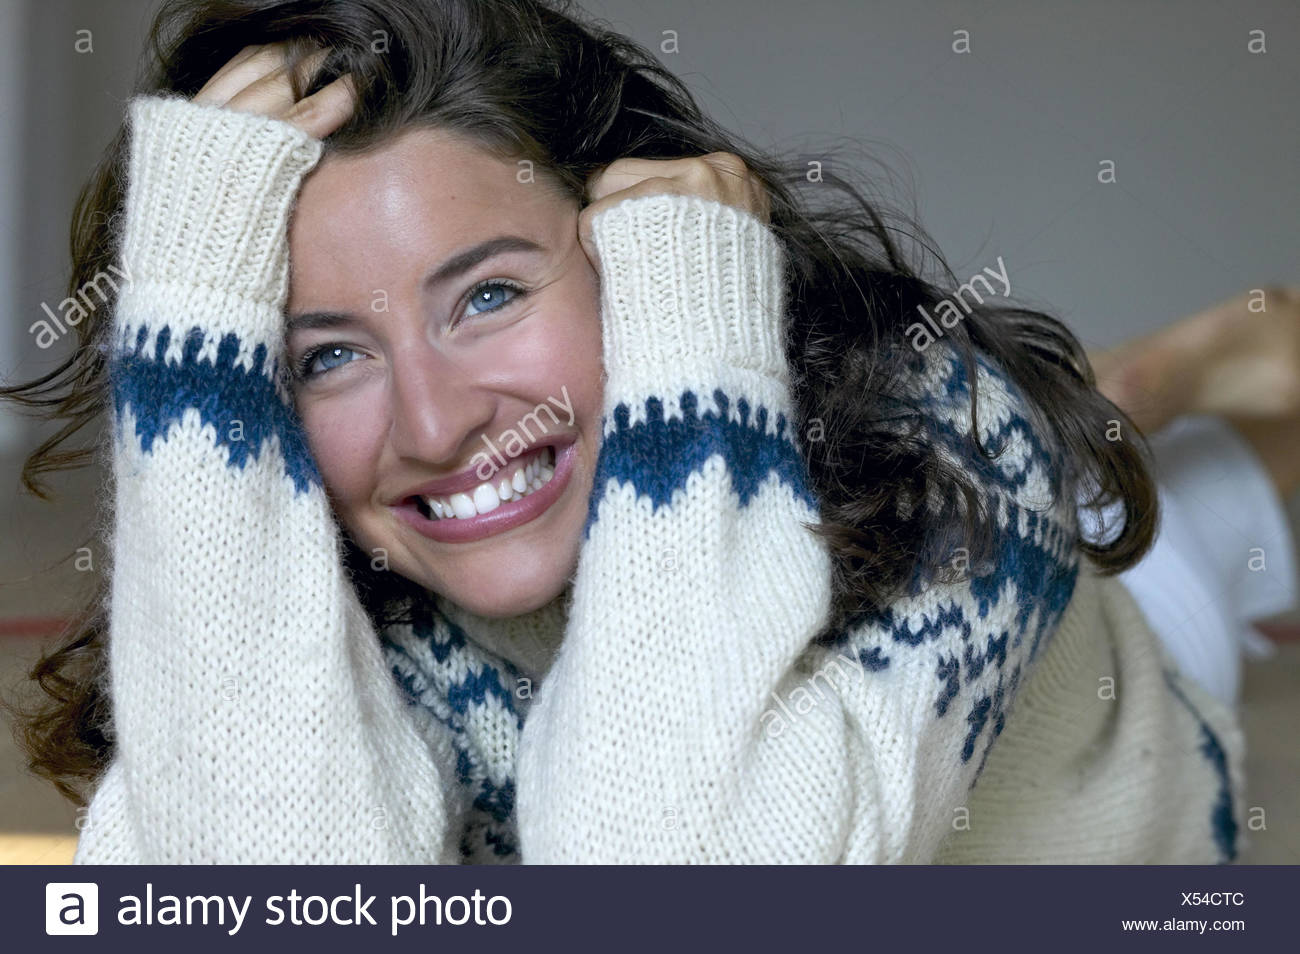 Woman Young Long Haired Rope Sweaters Laughs Portrait Series 20 30 Years Brown Hairy Winter Sweaters Sweaters Lie Rests Cheerfully Joy